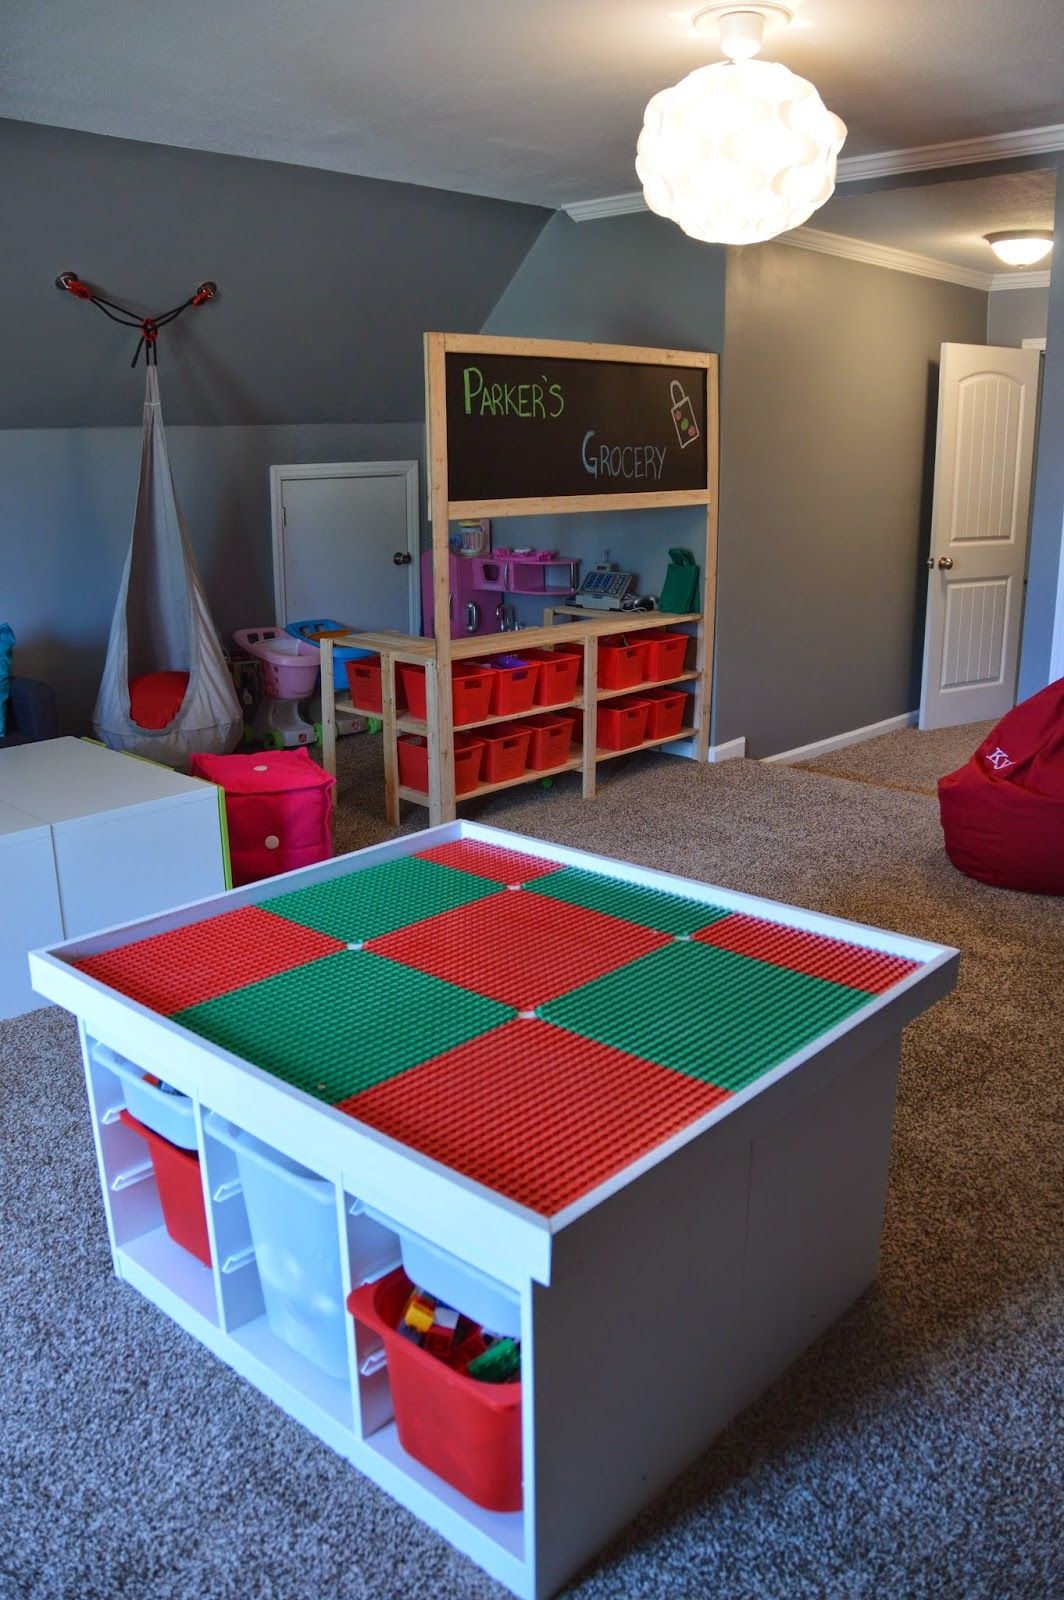 Lego Ideen Zum Selber Bauen Tour Of Our Home Playroom My Happy Home Lego Table Playroom